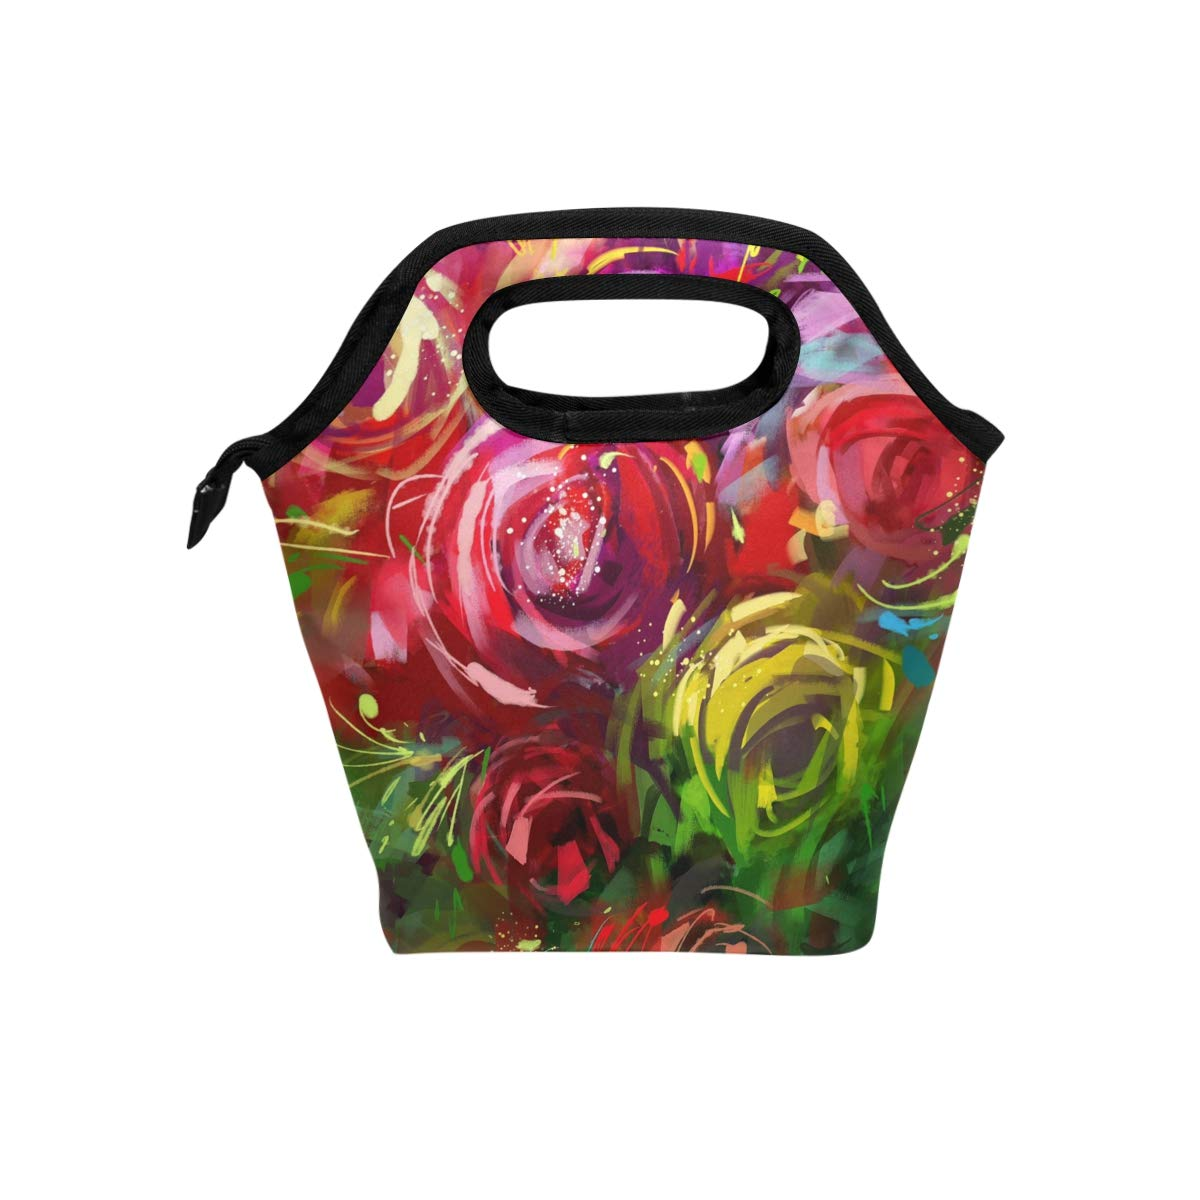 2124af789f2c Amazon.com: TropicalLife Lunch Tote Bag Art Rose Zipper Insulated ...